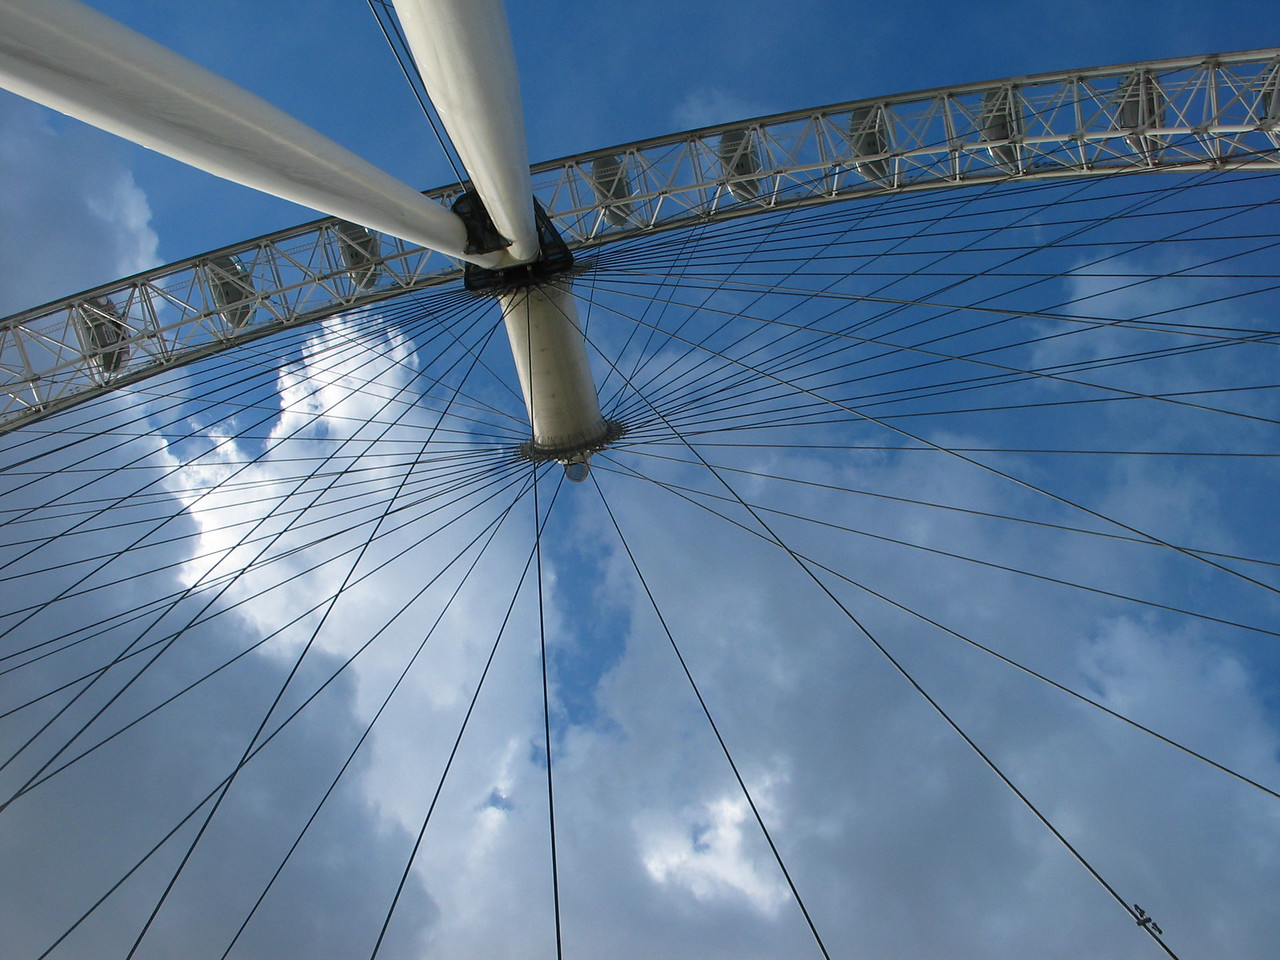 <b>Standing underneath the London Eye</b>